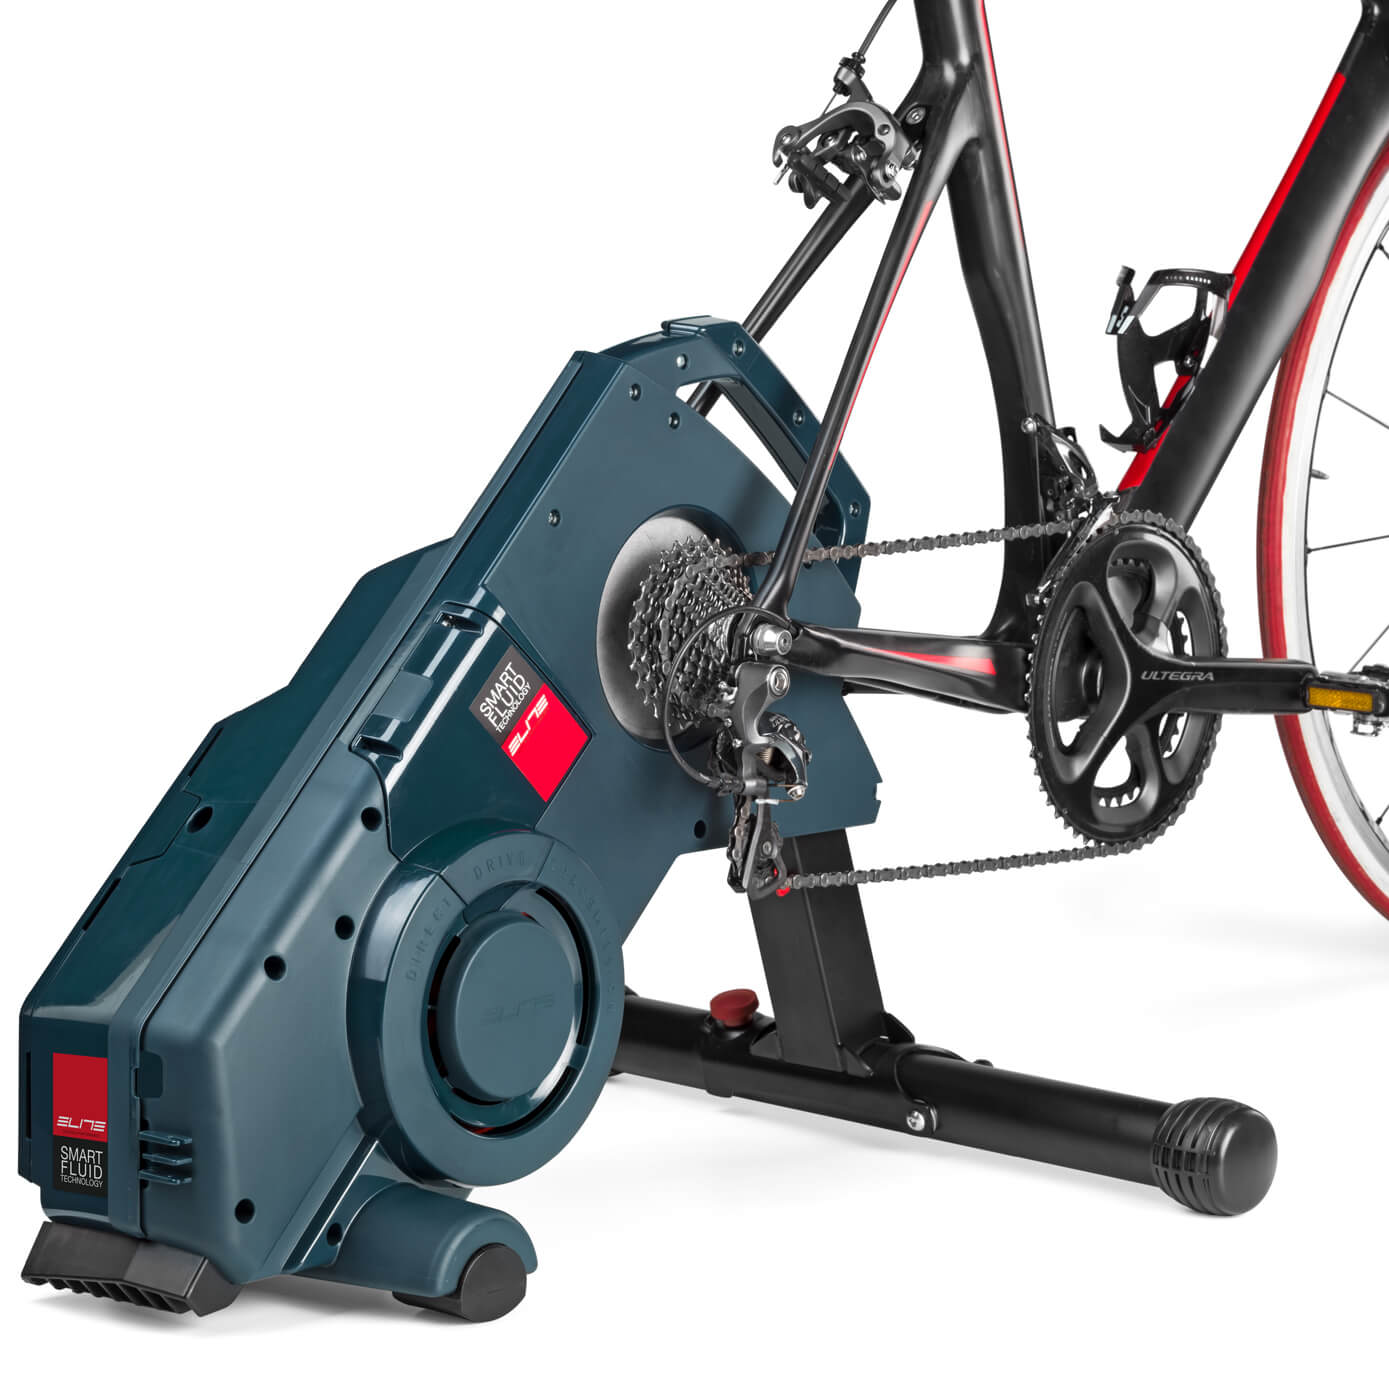 Elite Turno Direct Drive Smart B+ Turbo Trainer